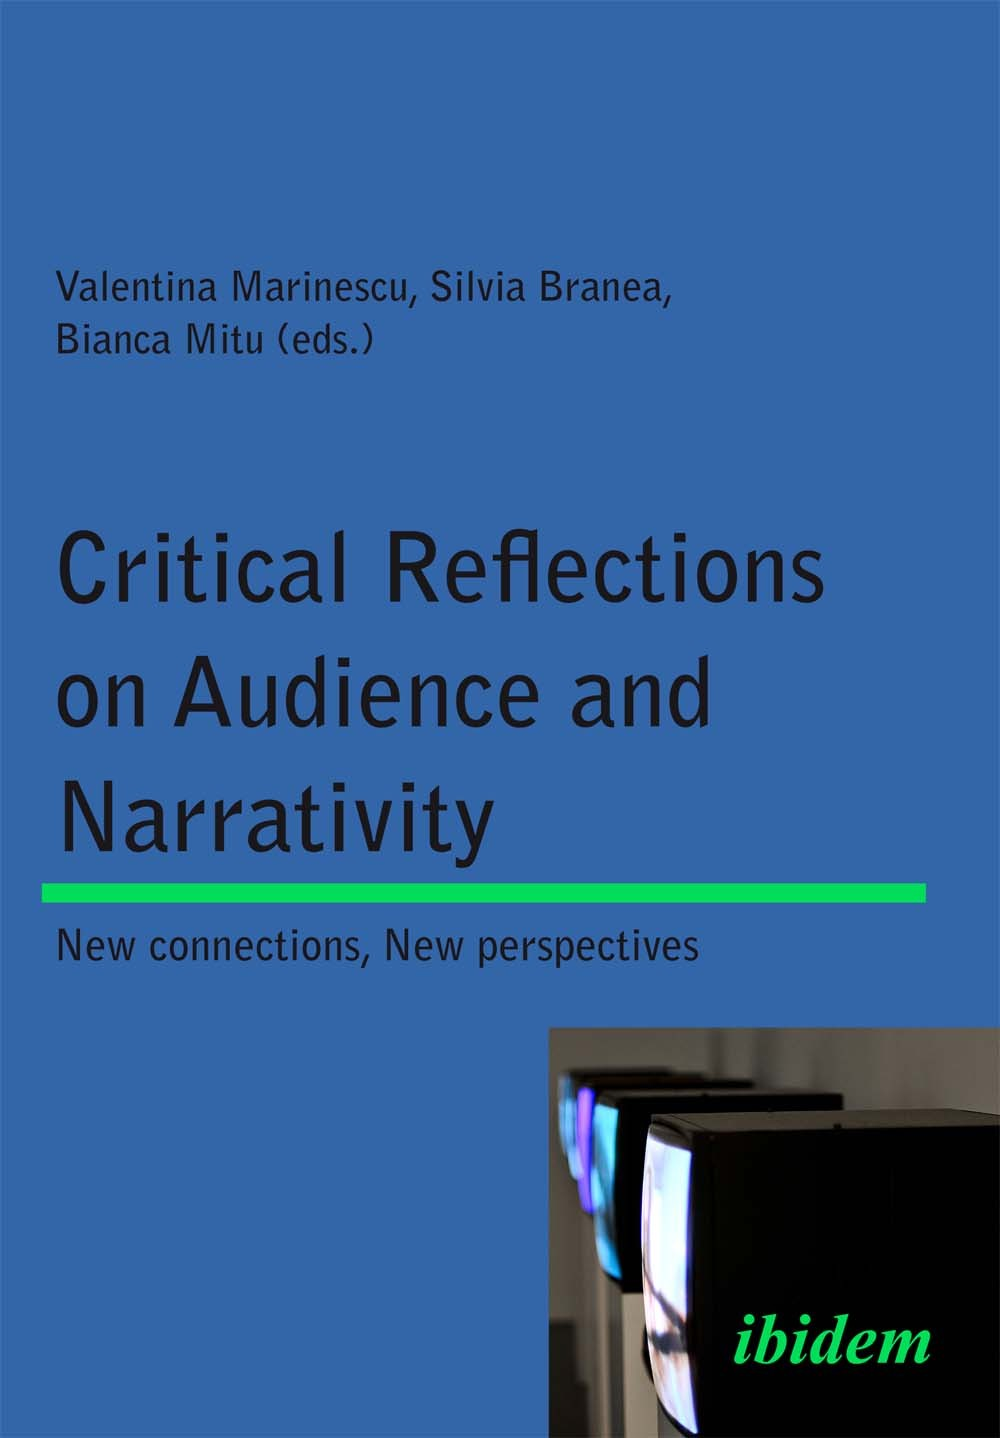 Critical Reflections on Audience and Narrativity